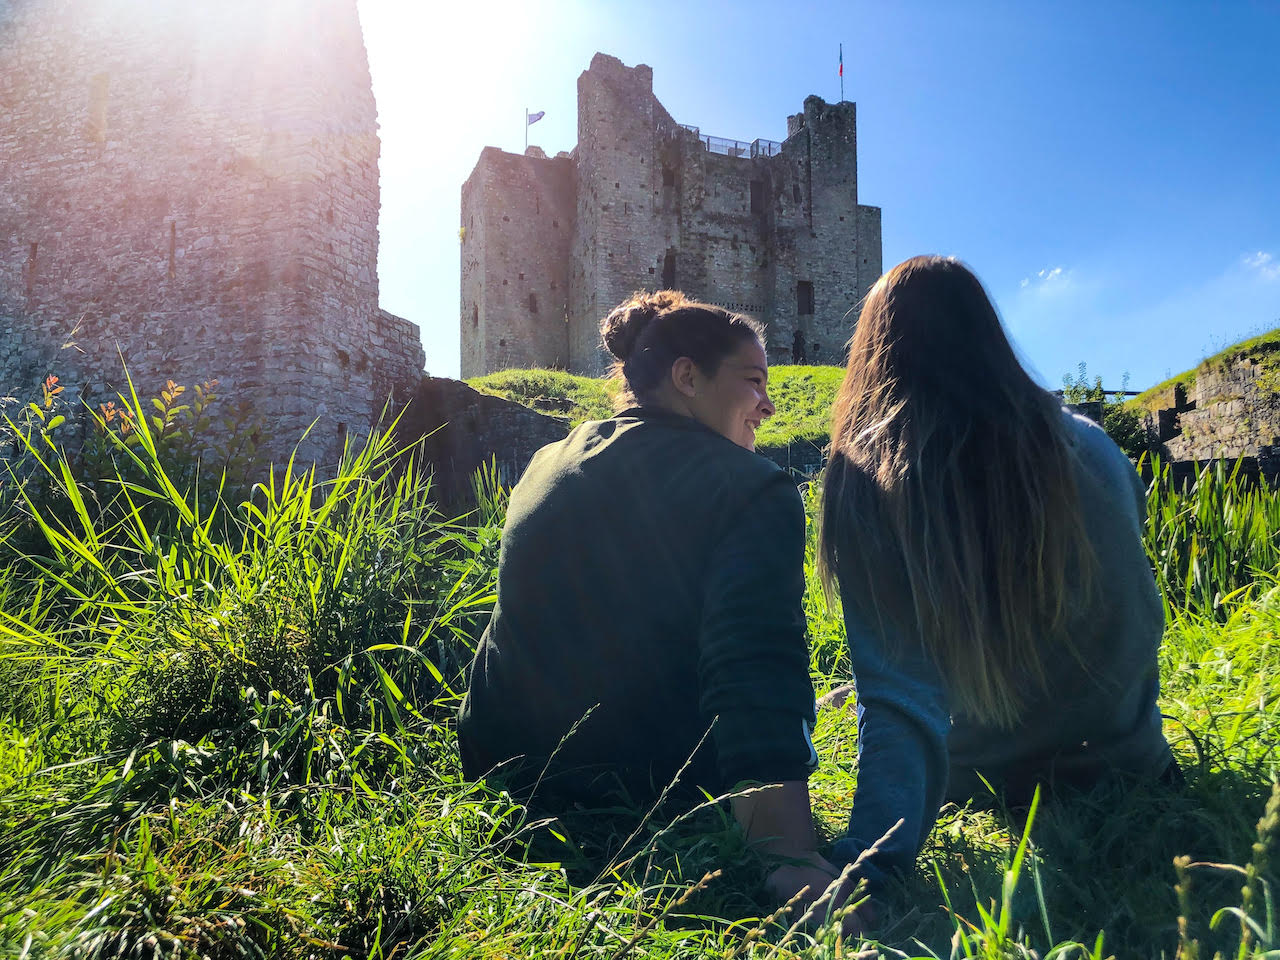 Devin and Jade sit in the grass below a medieval ruin on a sunny day.